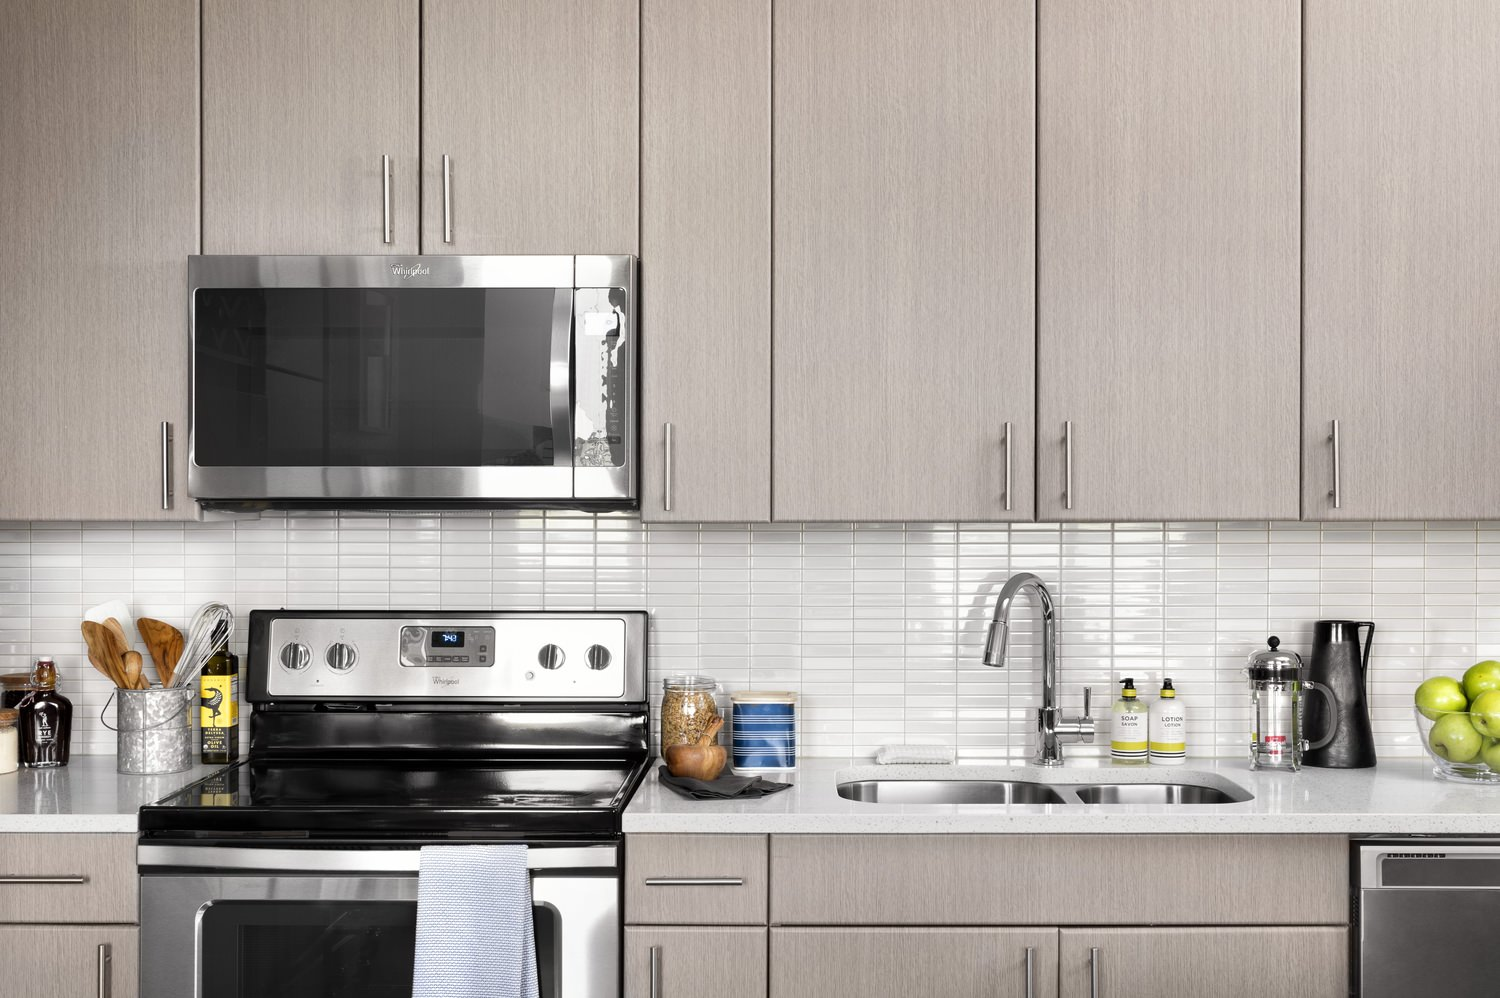 A view of a kitchen with light gray cabinets and stainless steel Whirpool appliances.